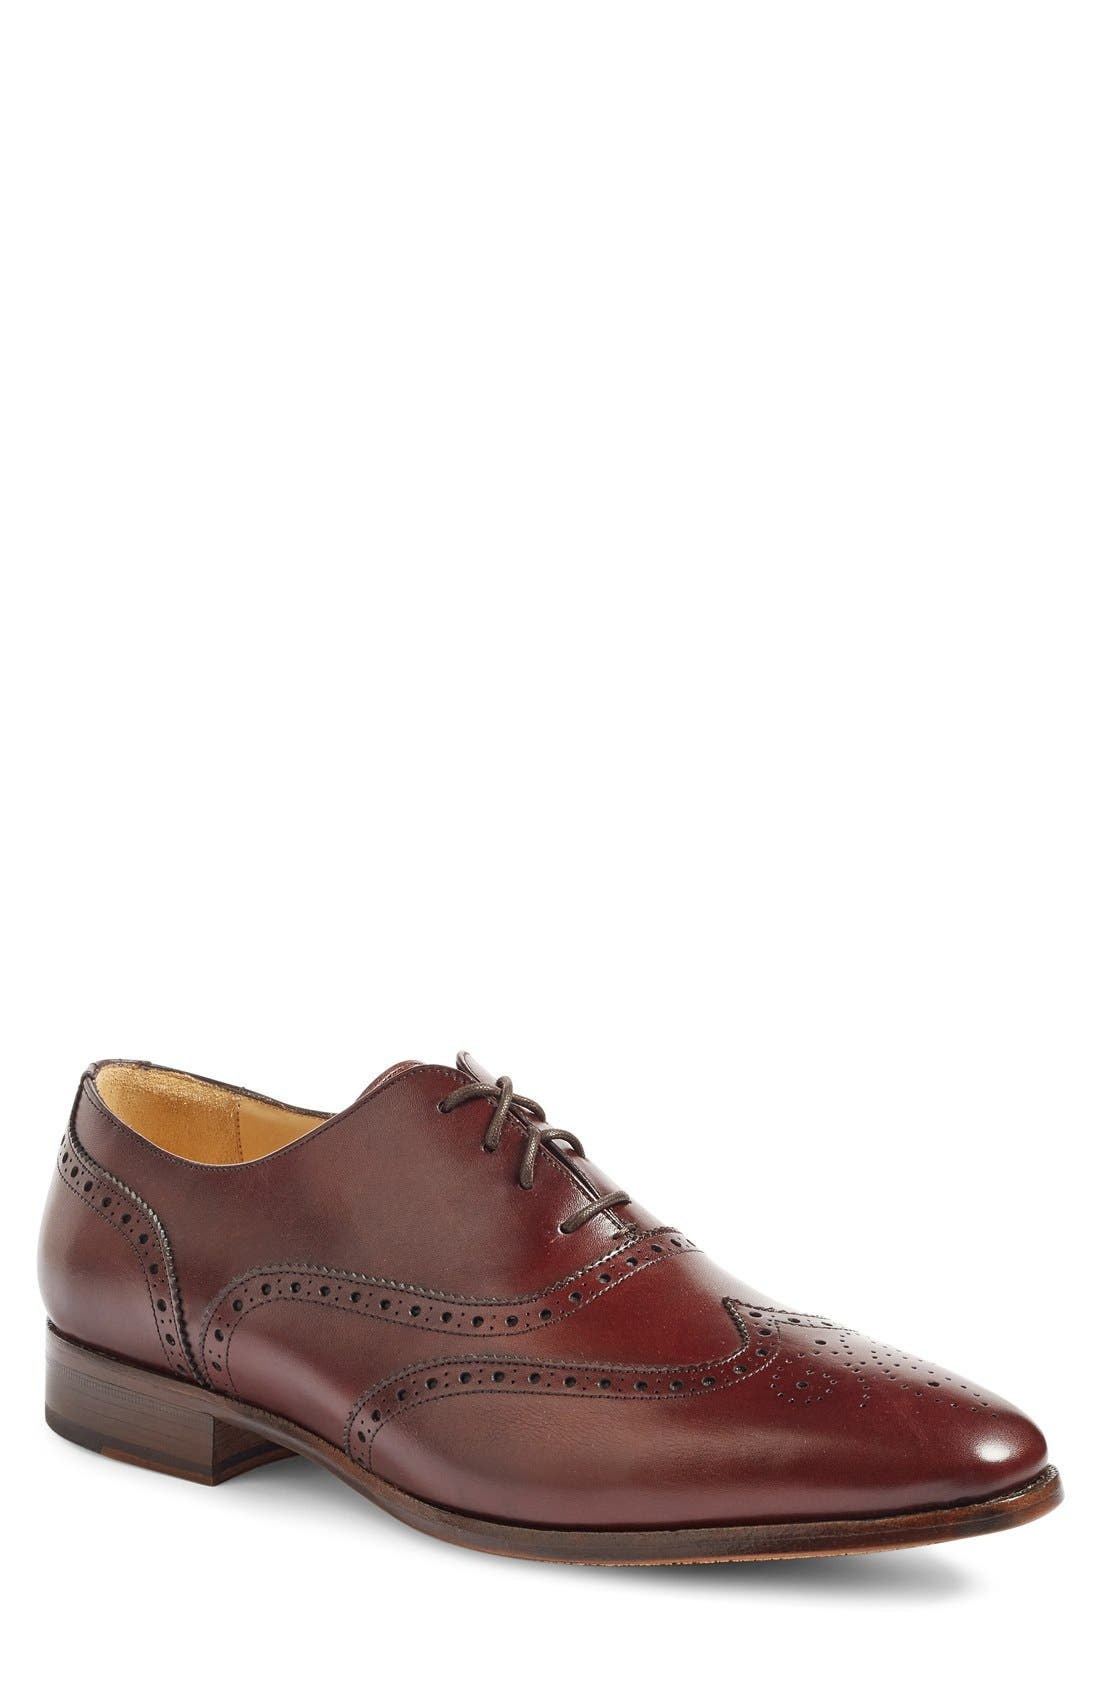 Alternate Image 1 Selected - Jack Erwin Adam Wingtip (Men)